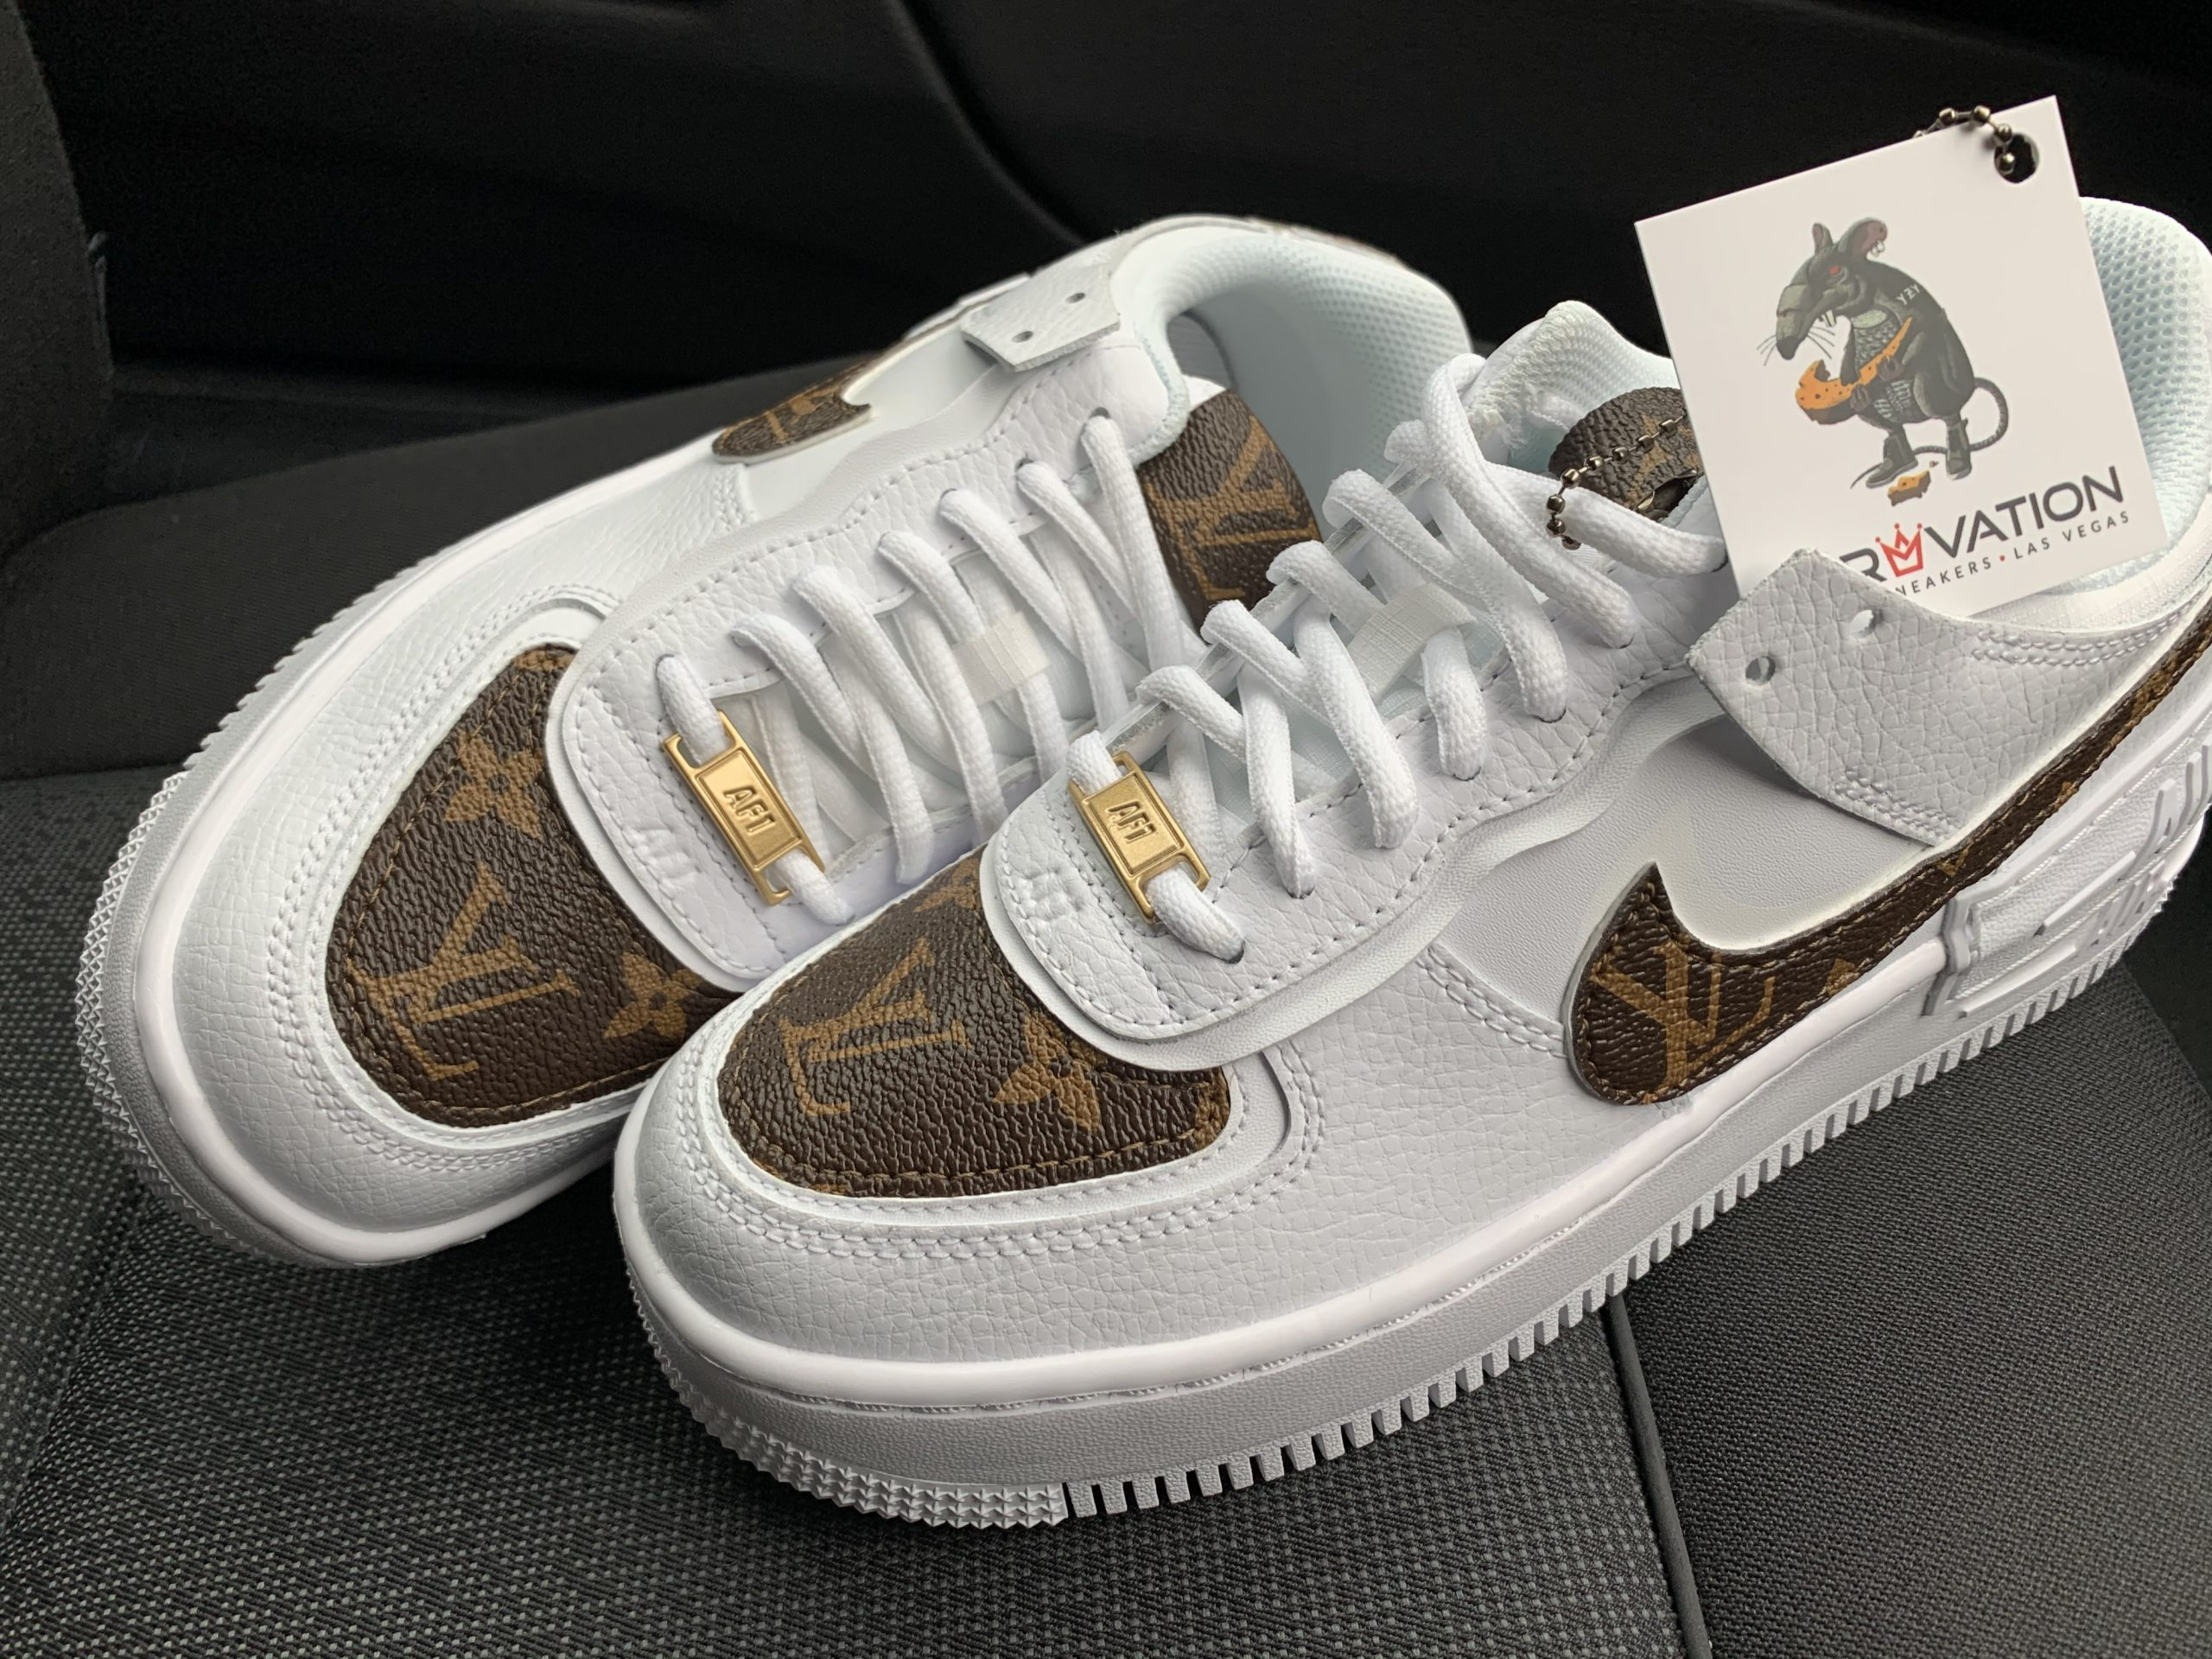 Custom Lv Air Force 1 Shadow Derivation Customs Custom Sneakers Swarovski Trainers Nike has never been a stranger would you cop louis vuitton's gold monogram earphone earrings for $350 usd? custom lv air force 1 shadow